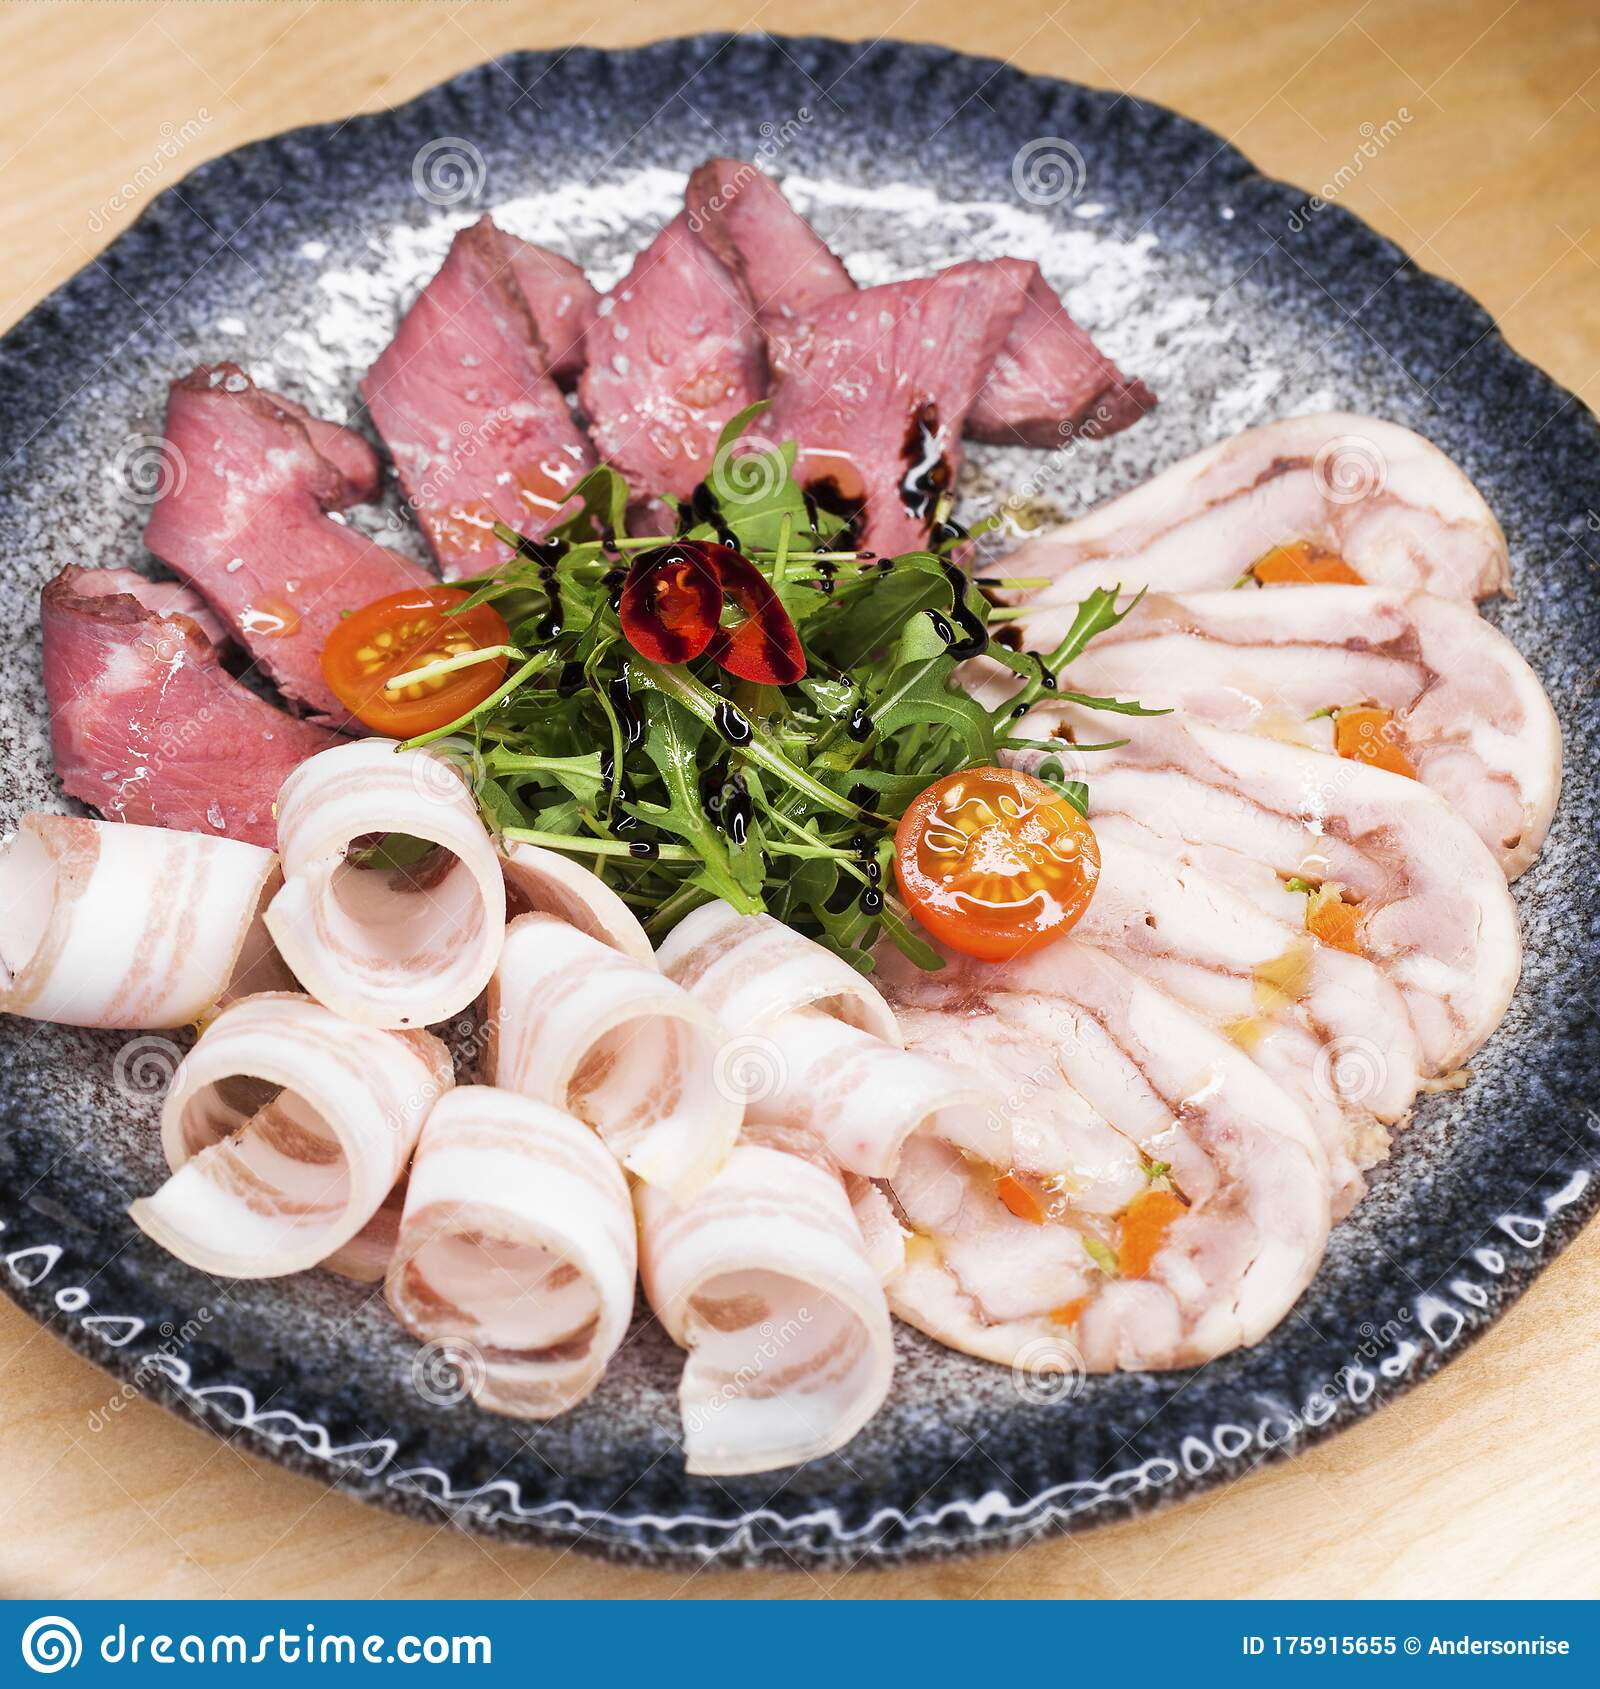 Meat Platter A Snack Under Vodka Stock Image Image Of Blue Cuisine 175915655